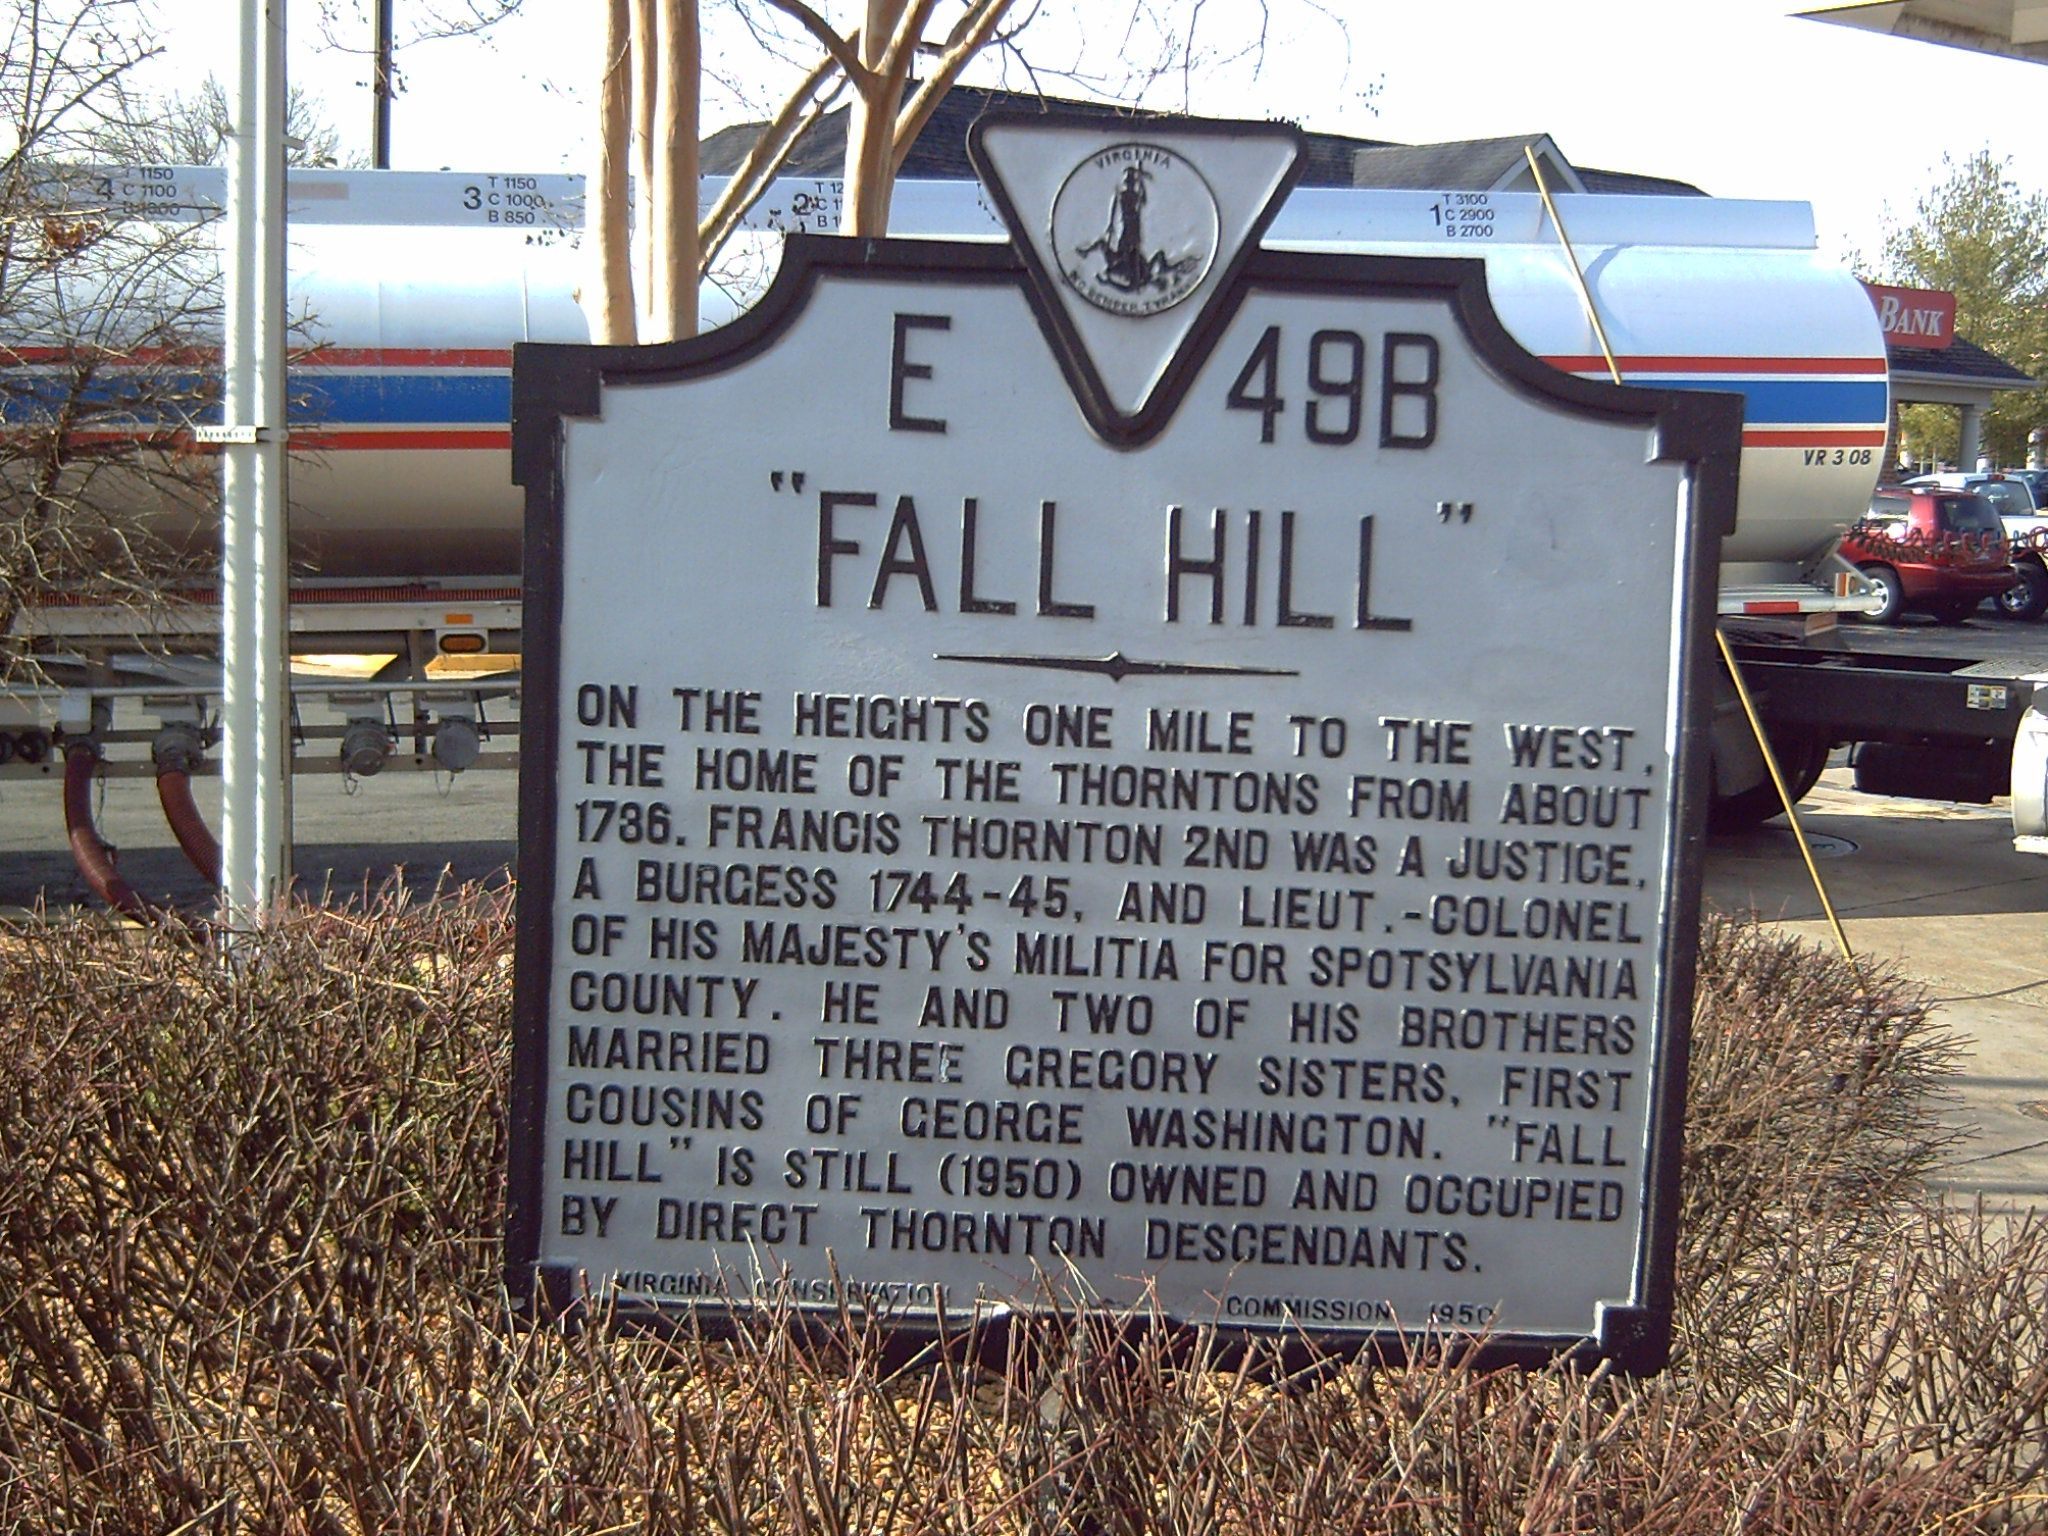 """Fall Hill"" Marker"